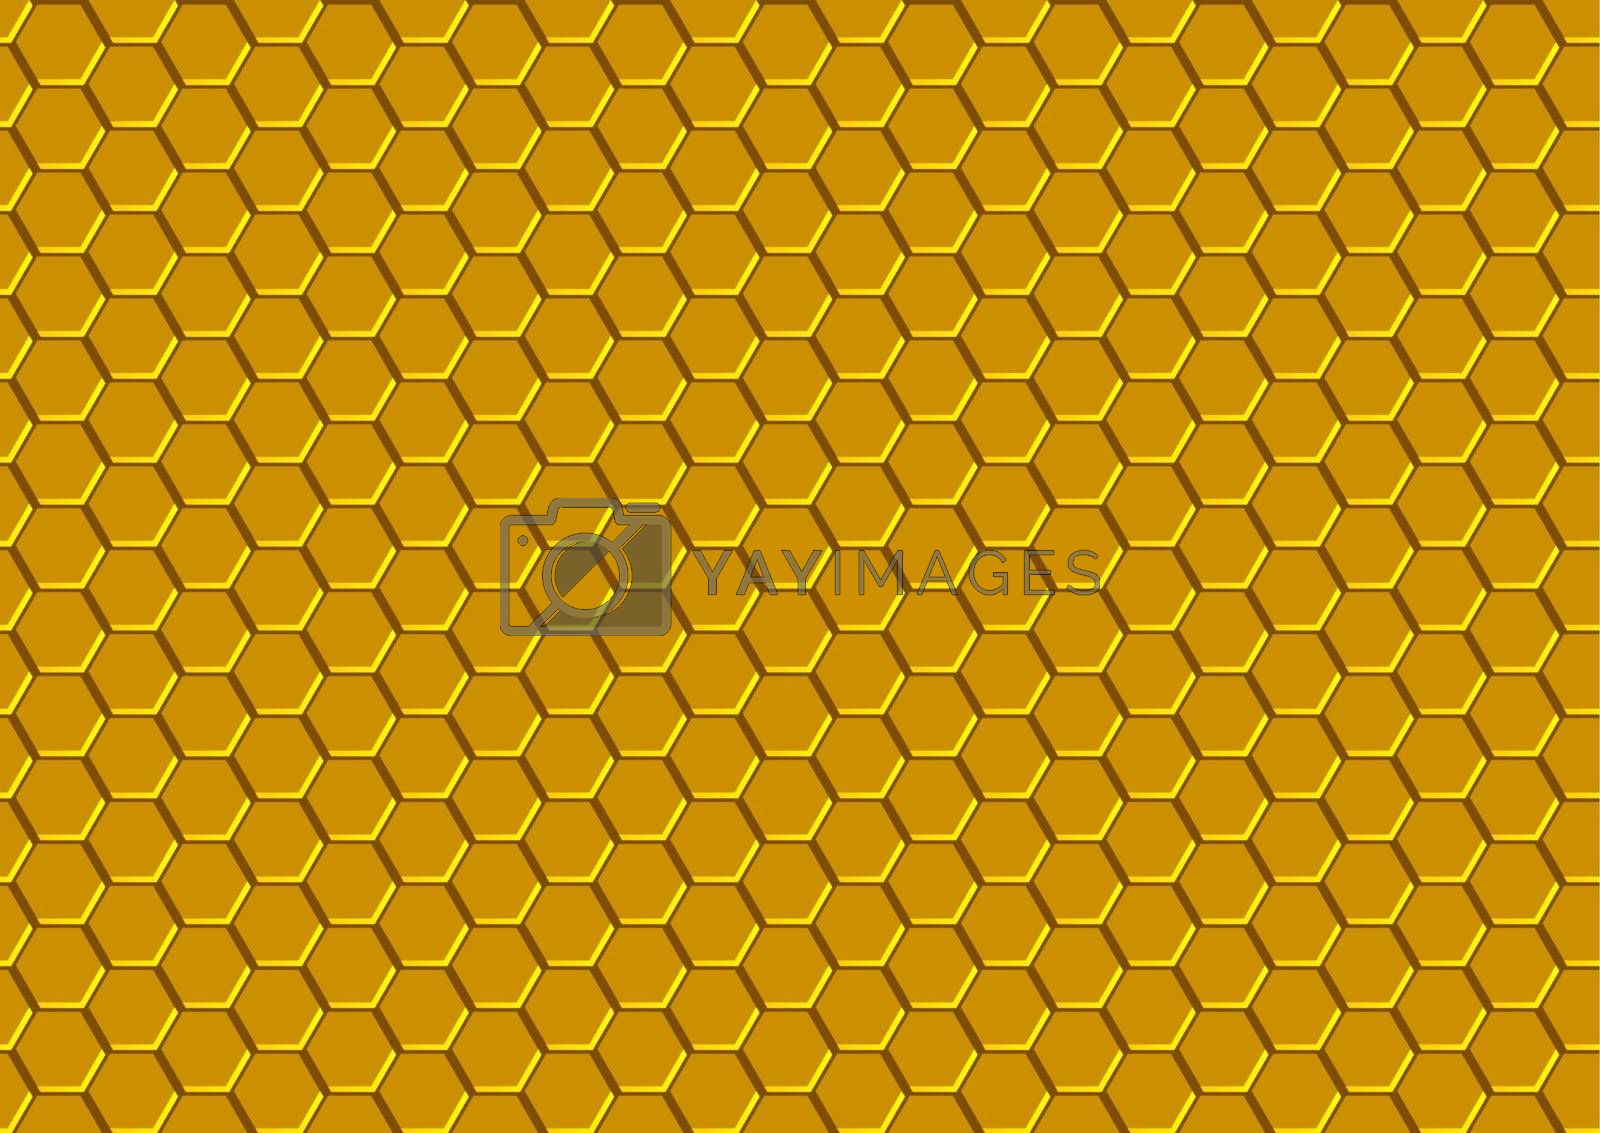 Honeycomb Texture - Background Pattern Illustration, Vector